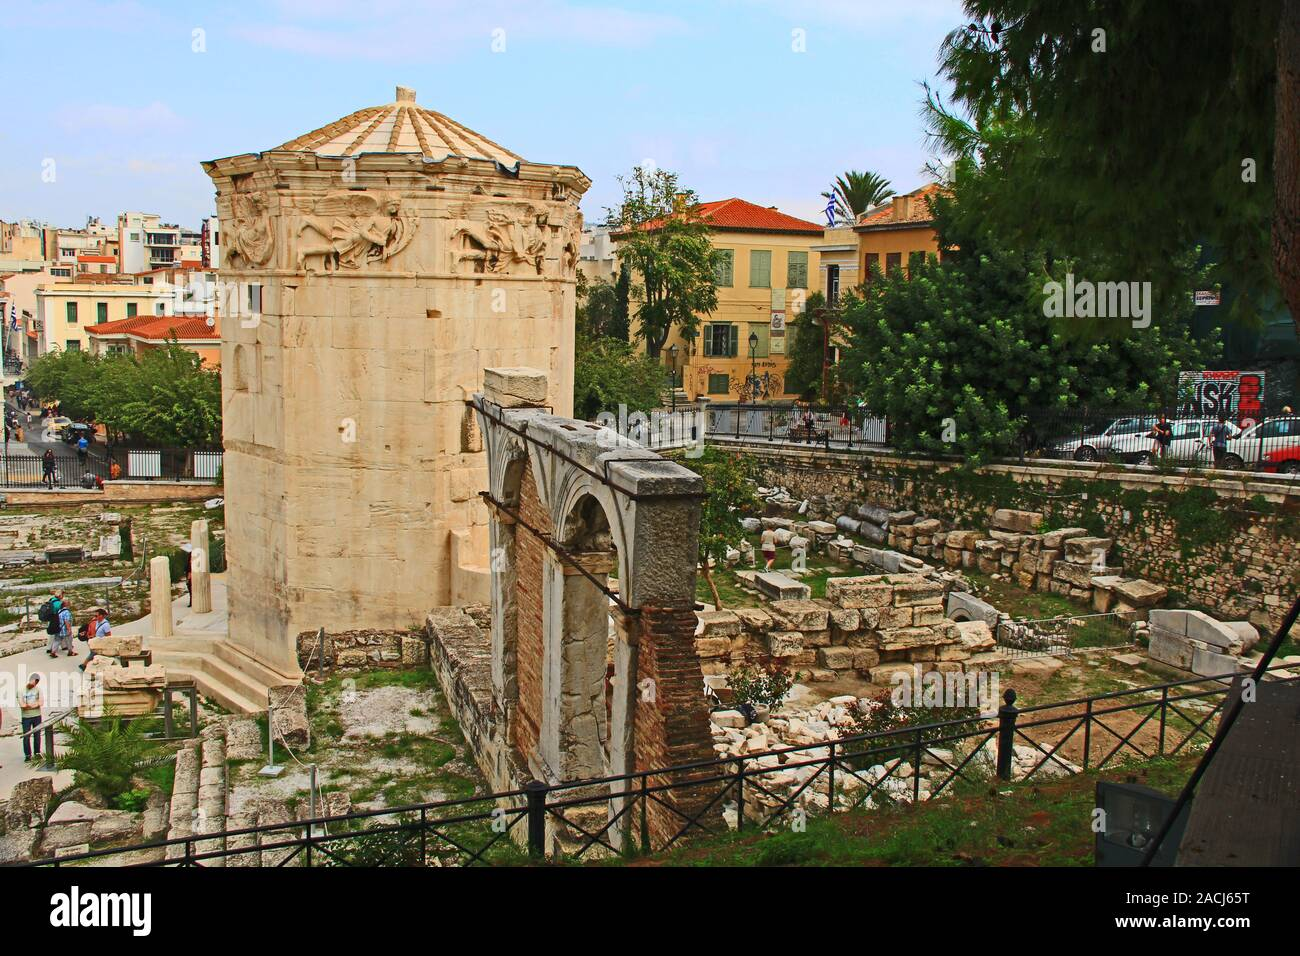 Roman Agora Near The Tower of the Winds in Athens, Greece Stock Photo